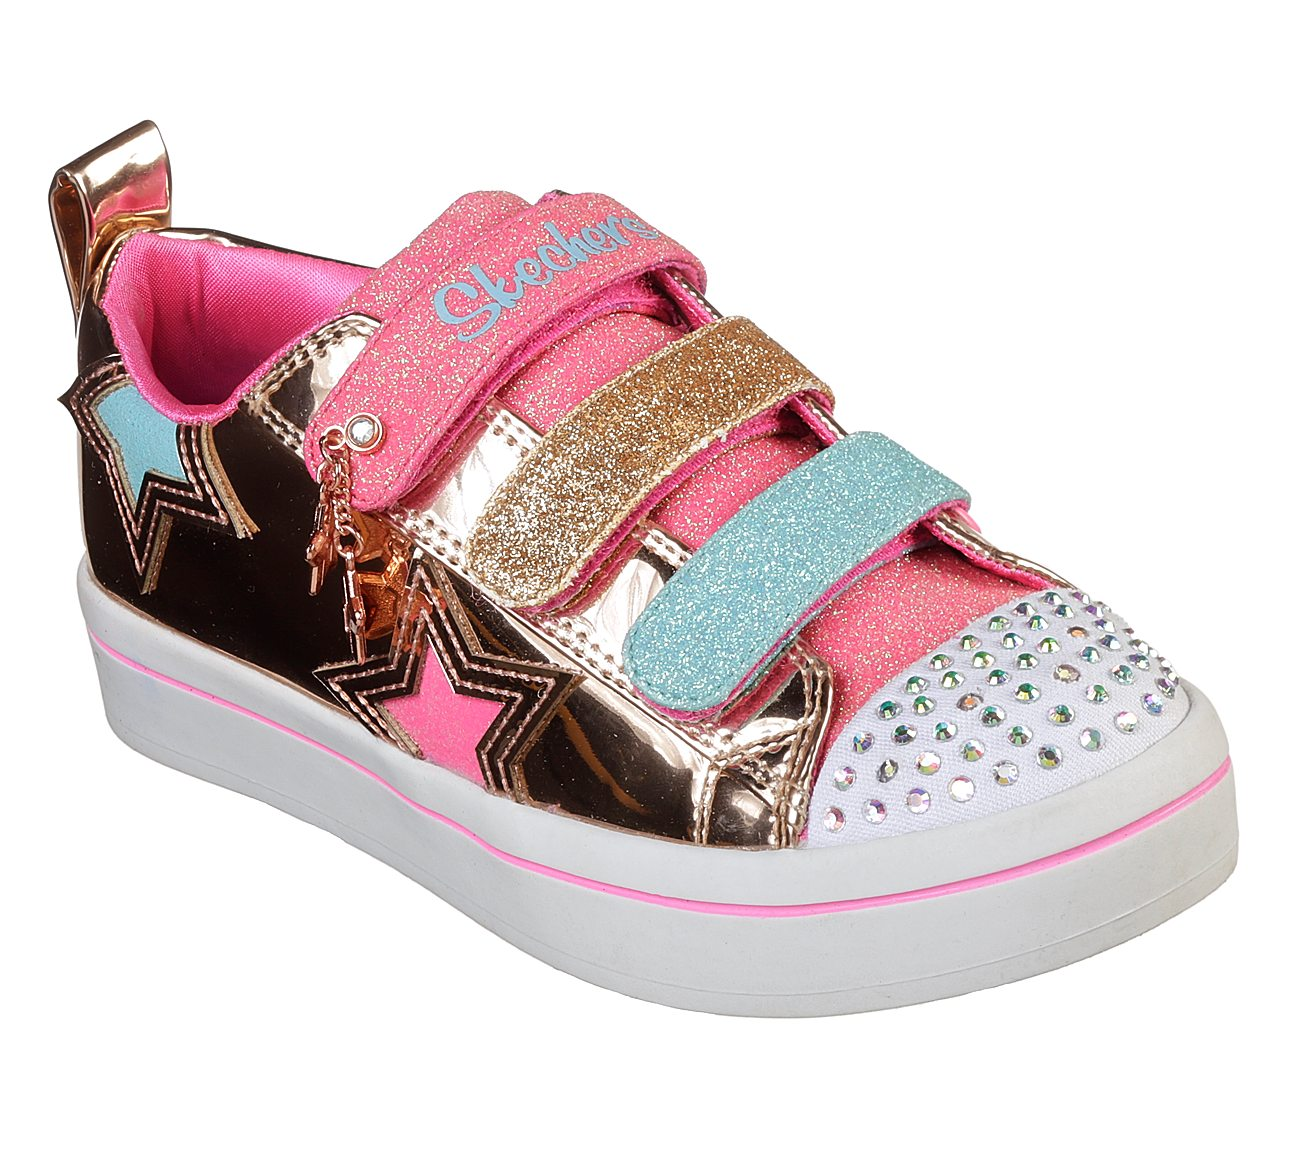 Buy SKECHERS Twinkle Toes: Twinkle Lite Mermaid Magic